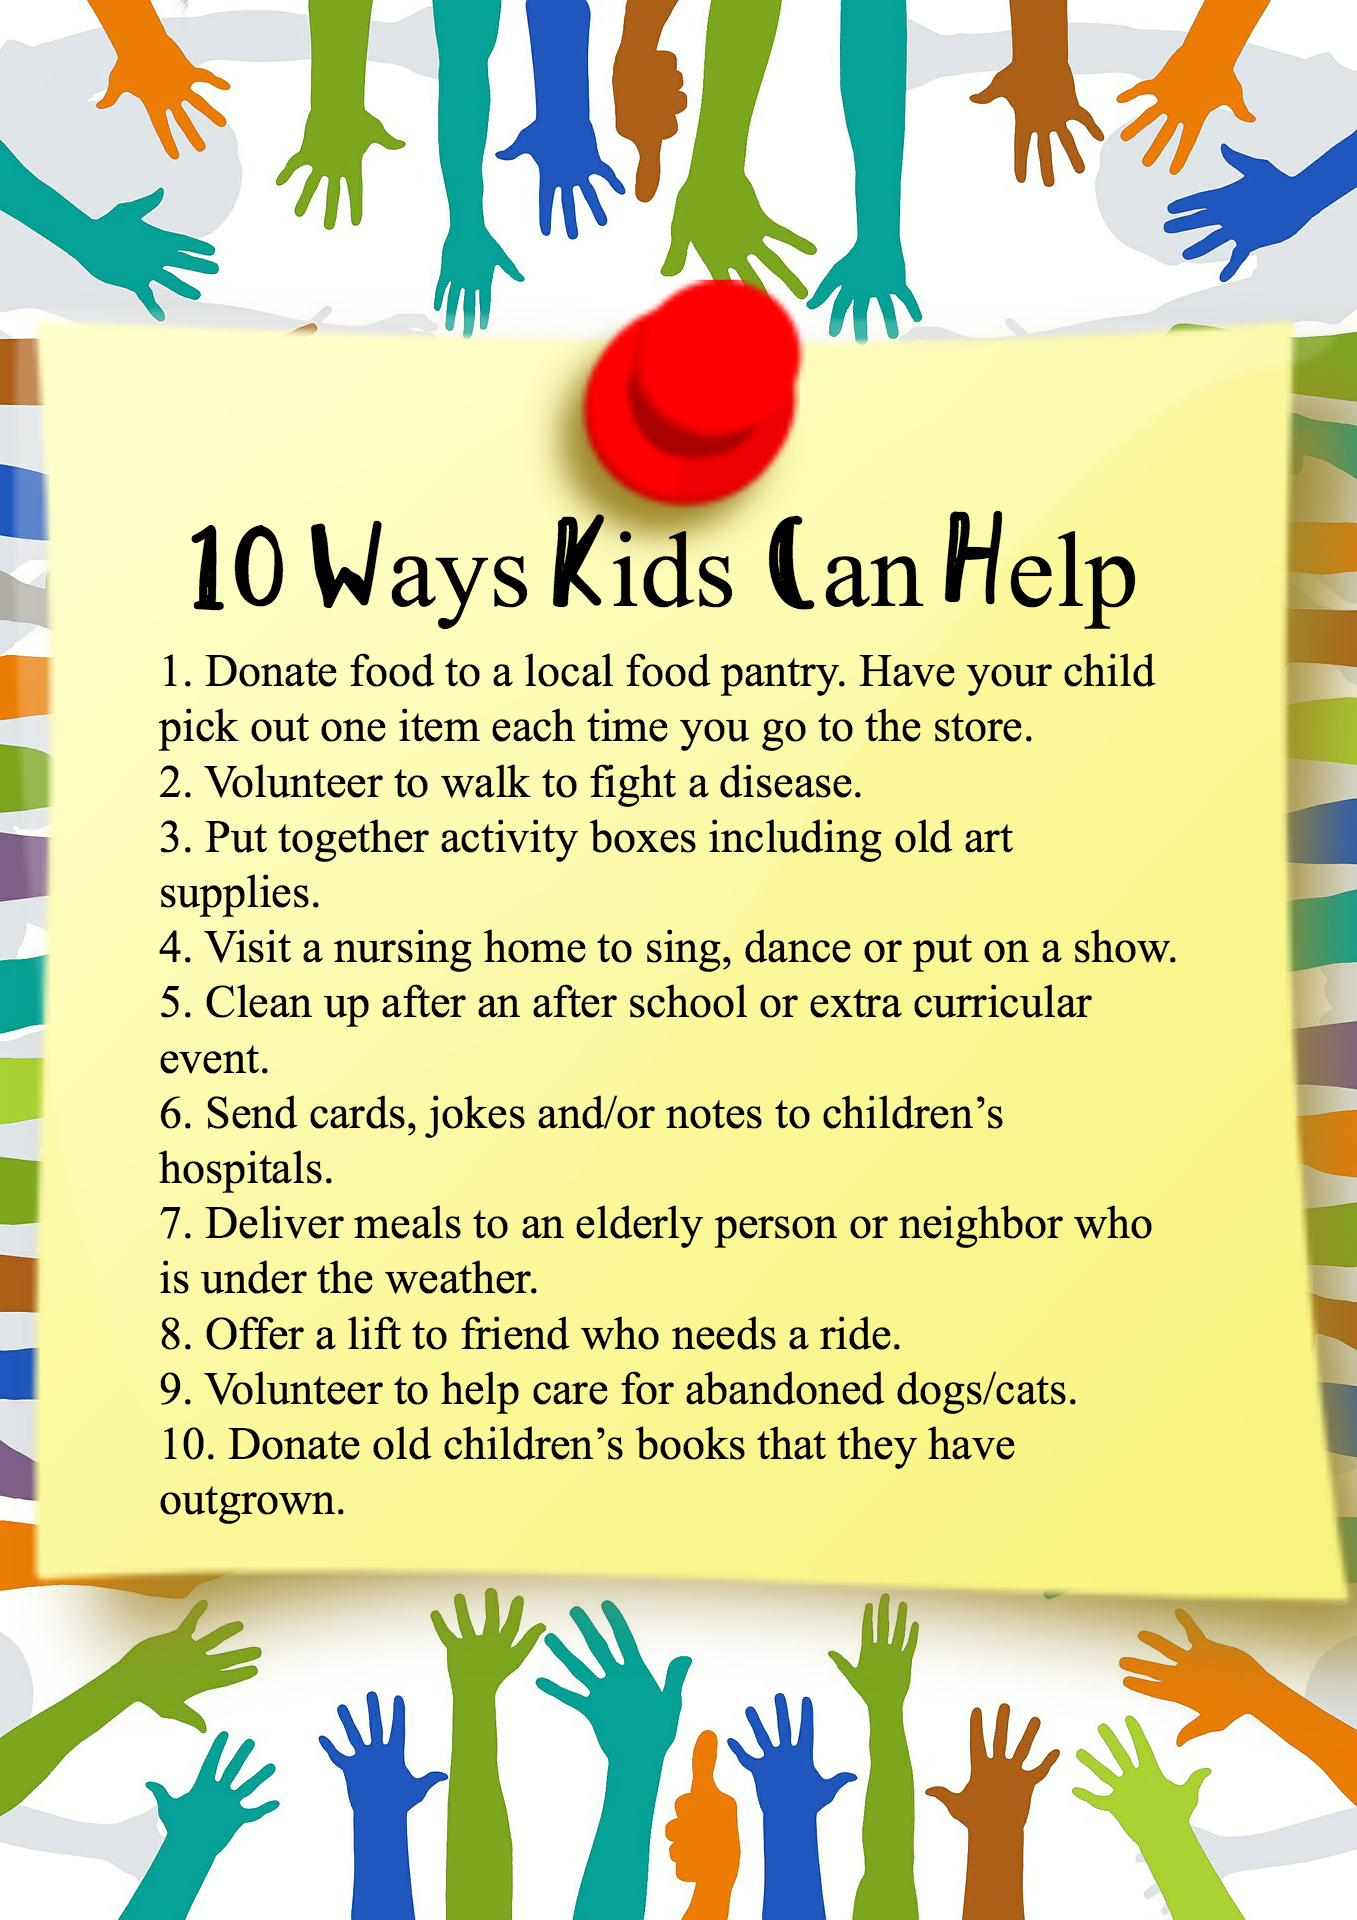 Kids and Volunteering to Help Others